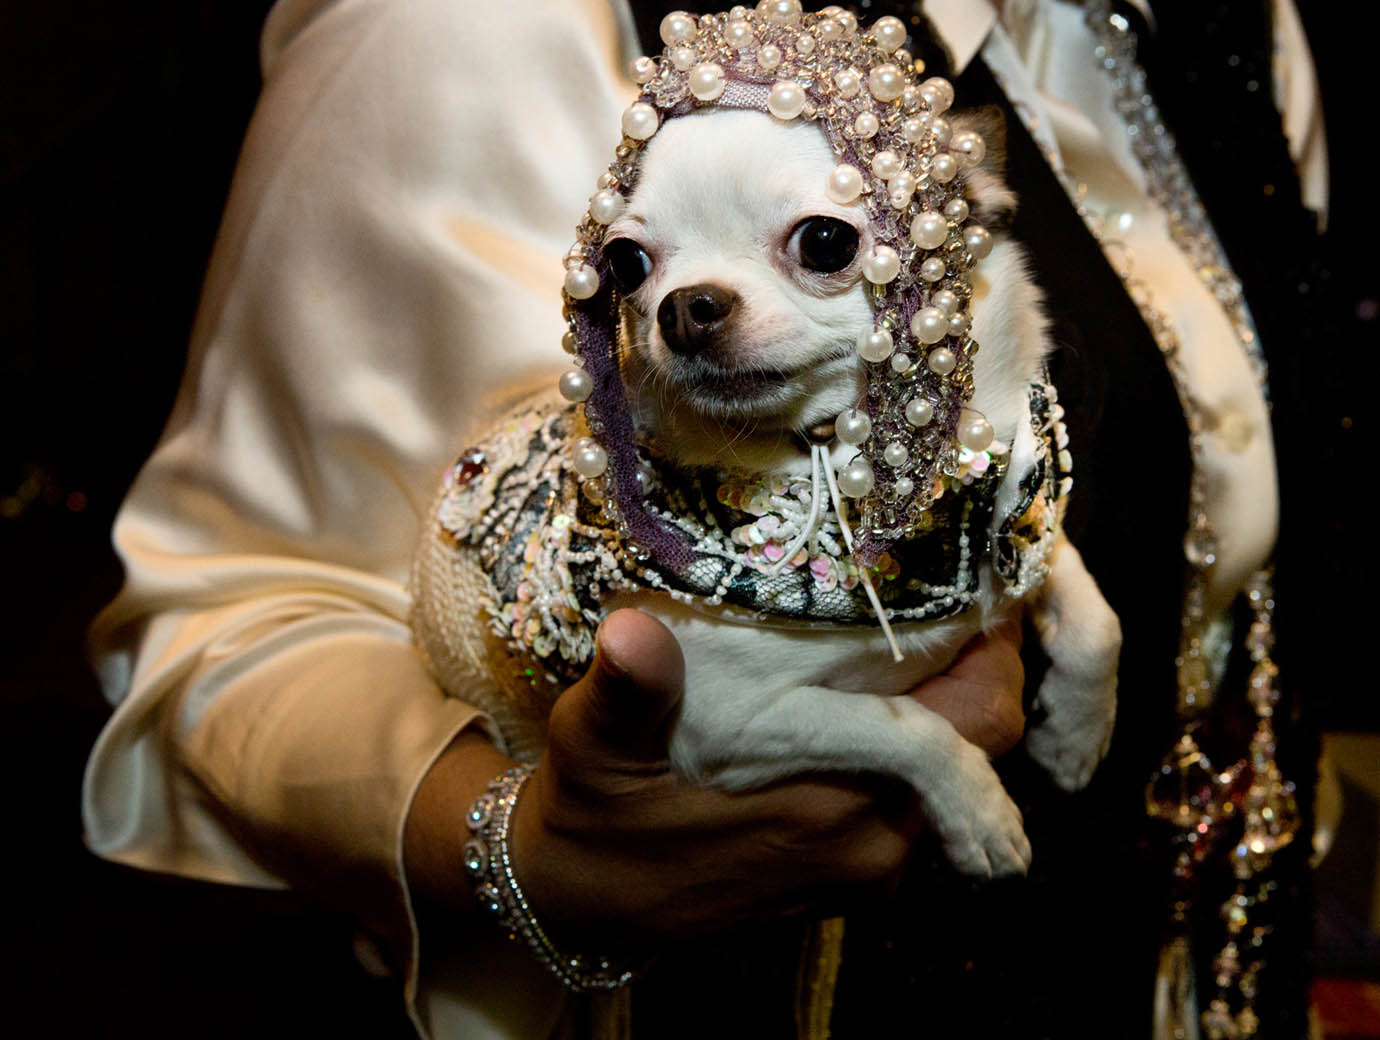 At Roaring Twenties Pet Fashion Show by Tropiclean